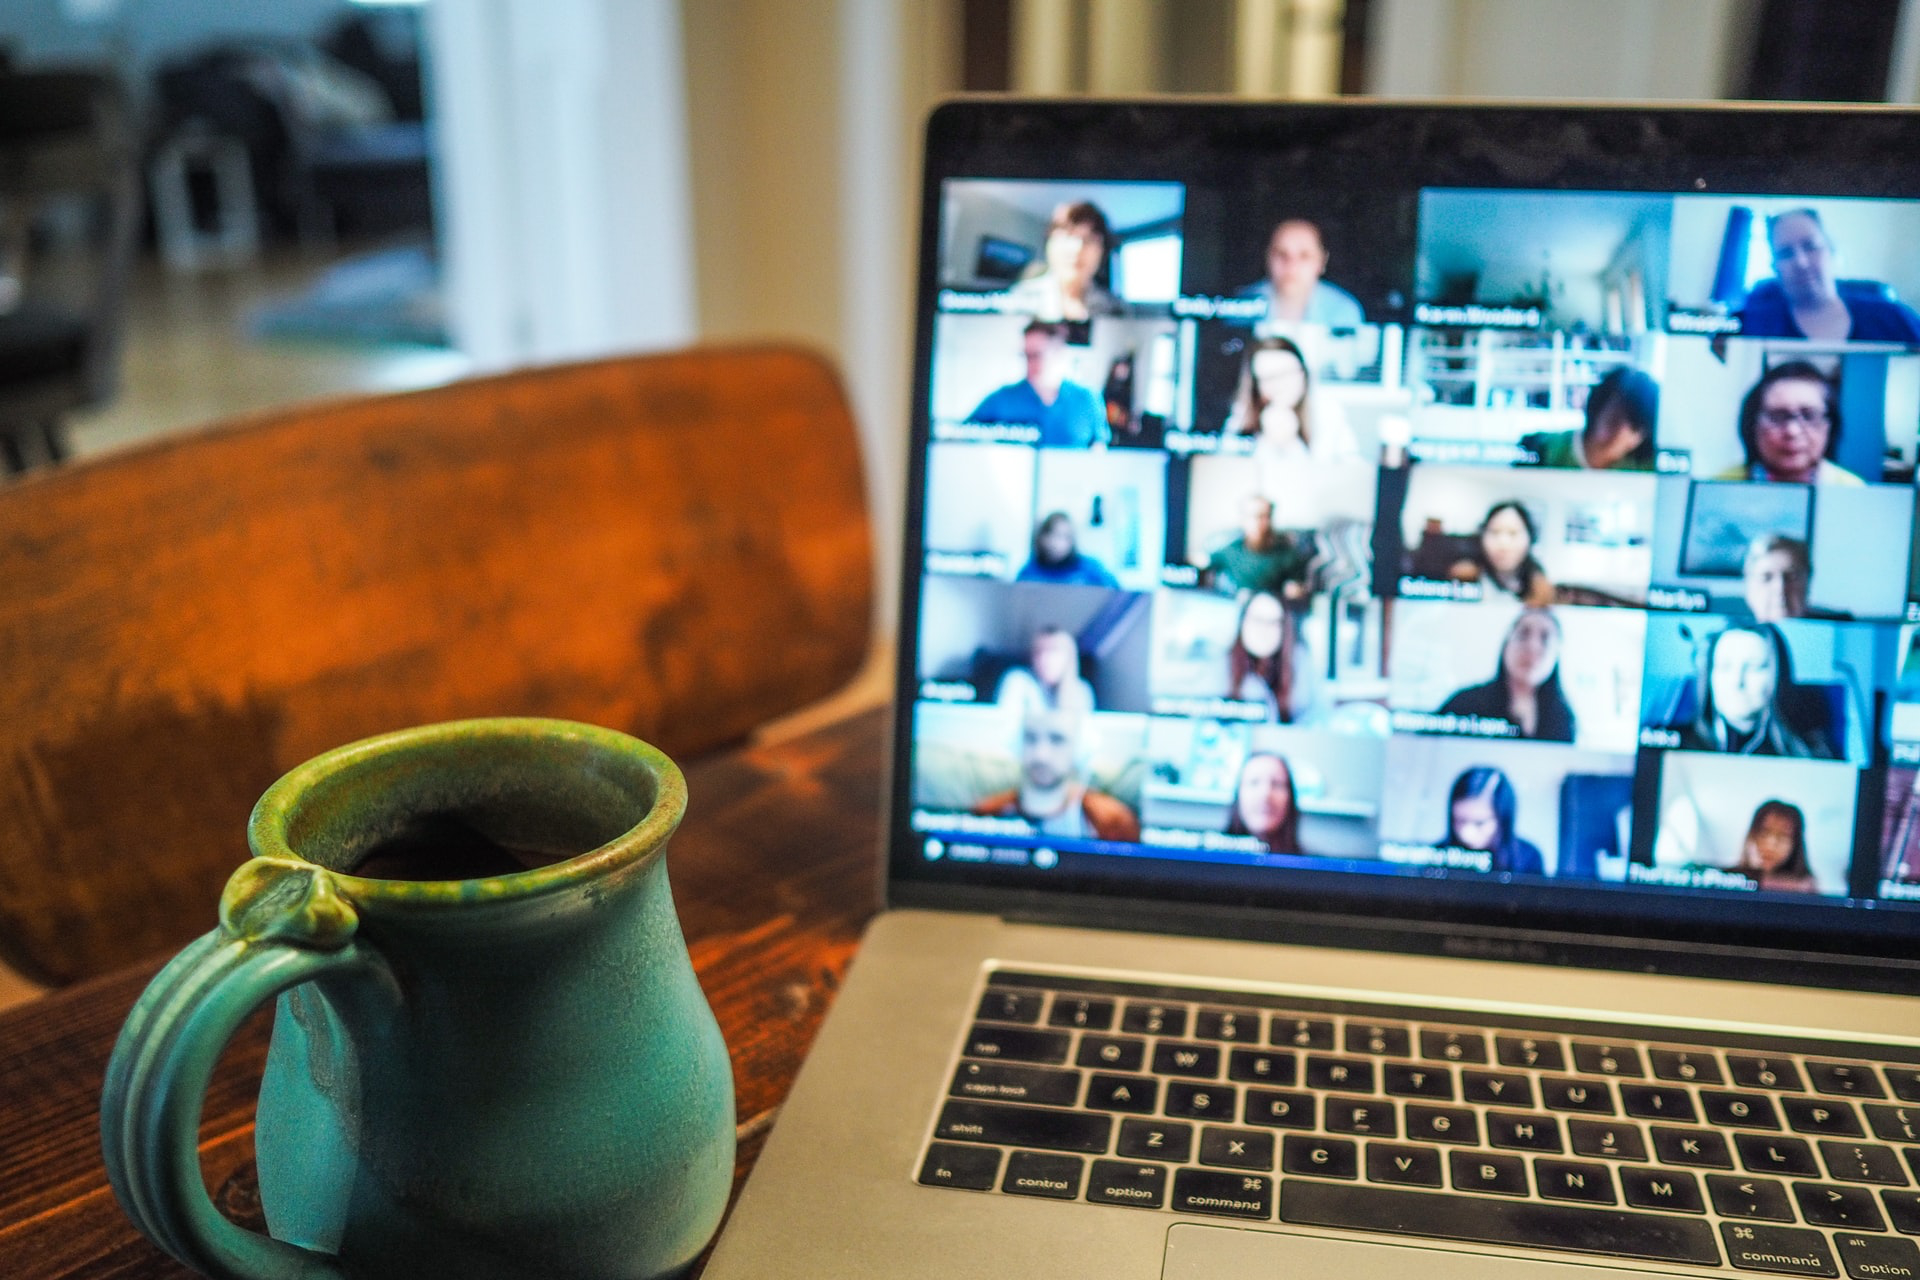 Tips on How to Look Good in Virtual Events